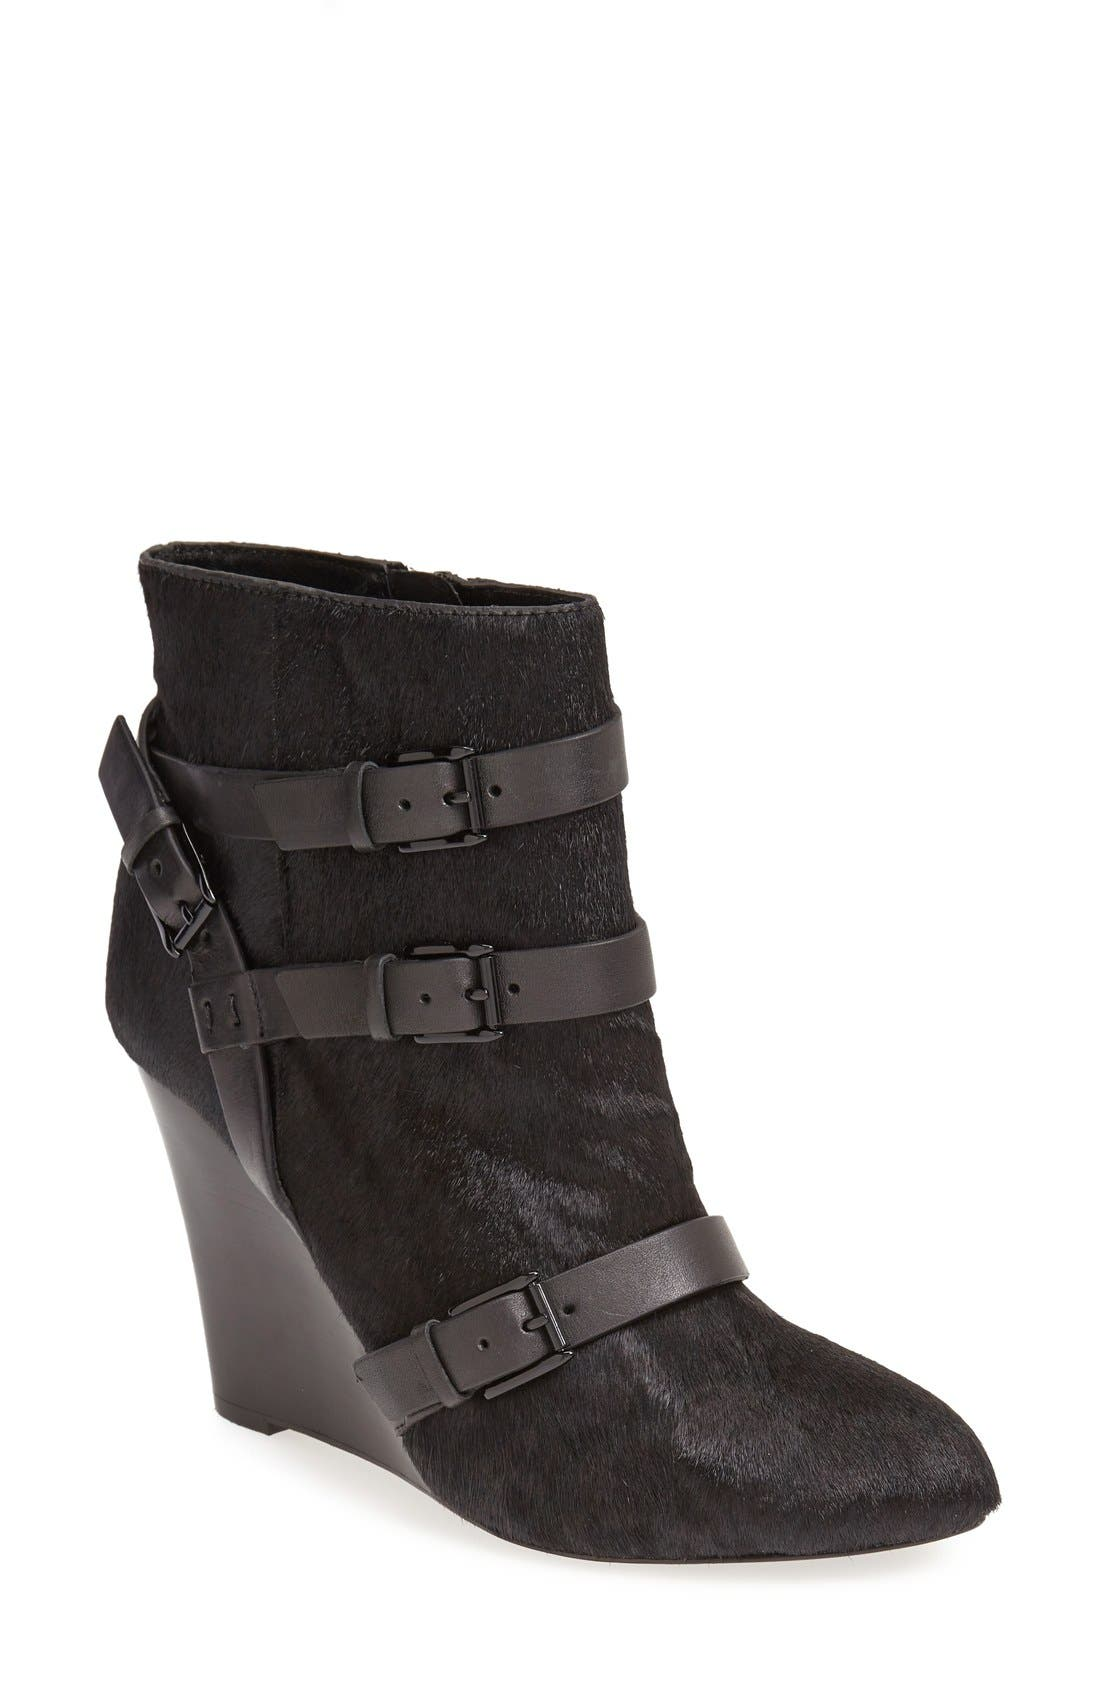 'Maggie' Wedge Bootie,                             Main thumbnail 1, color,                             524